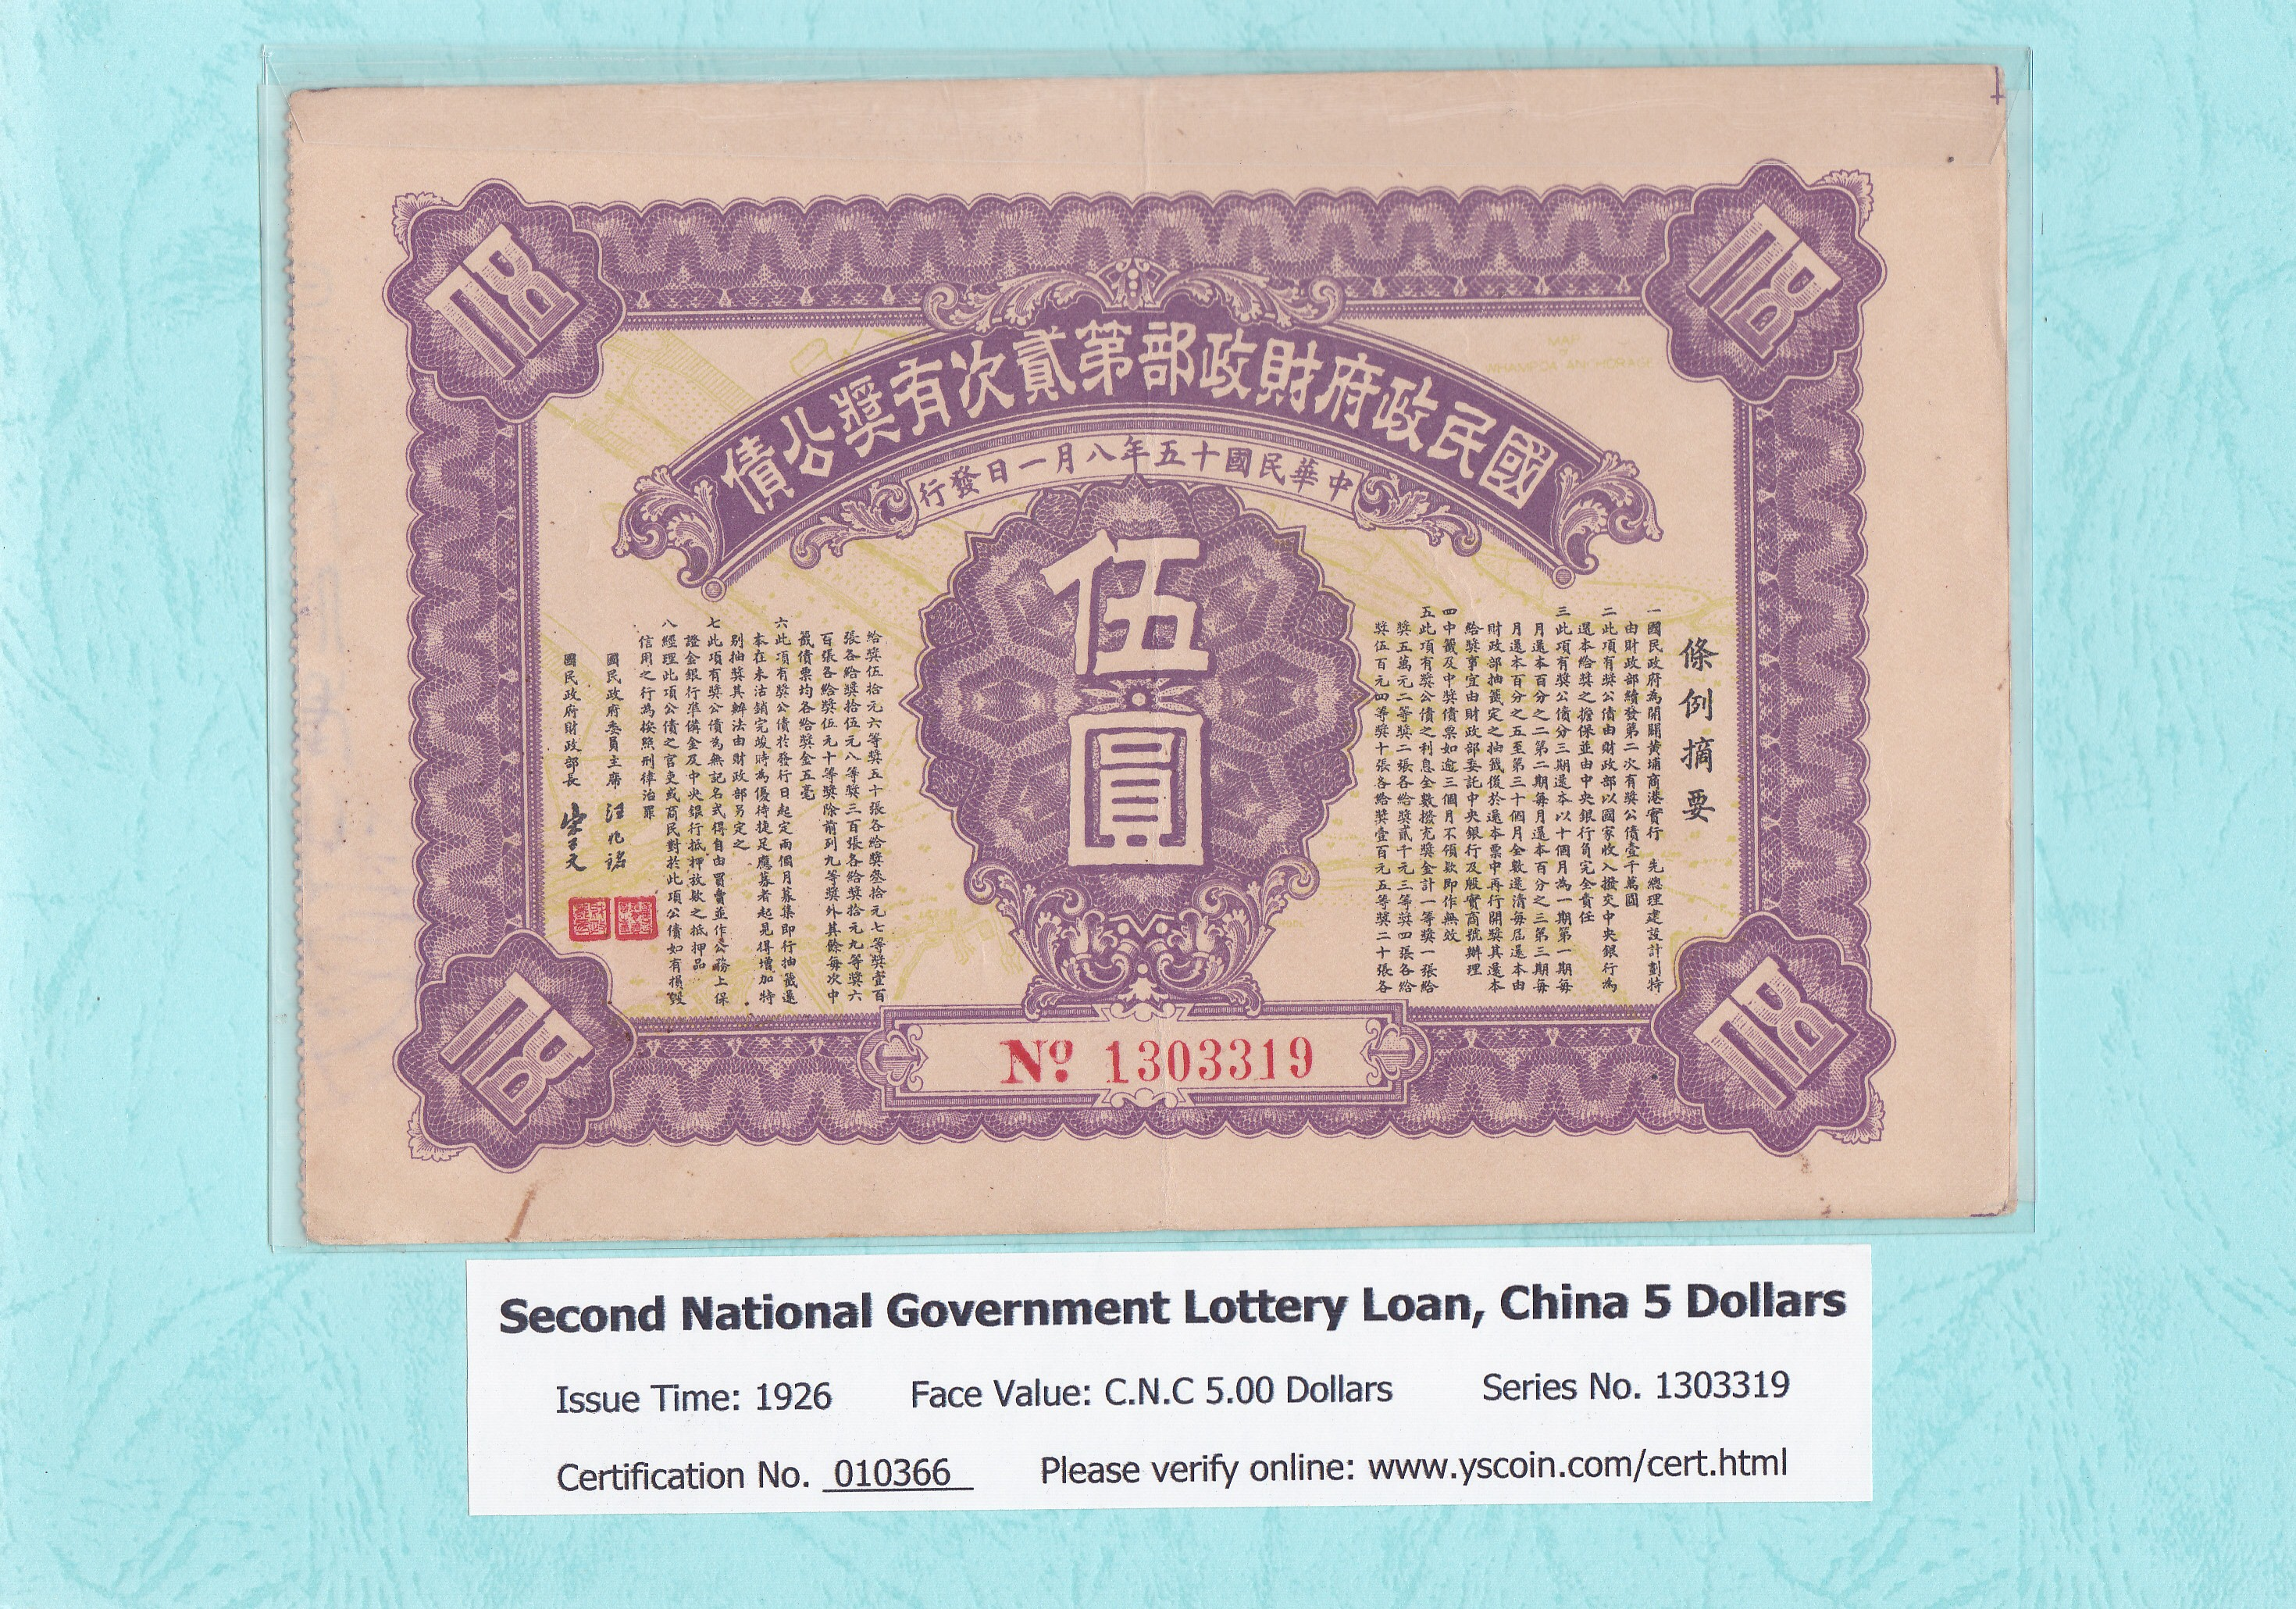 010366, Second National Government Lottery Loan, China 5 Dollars